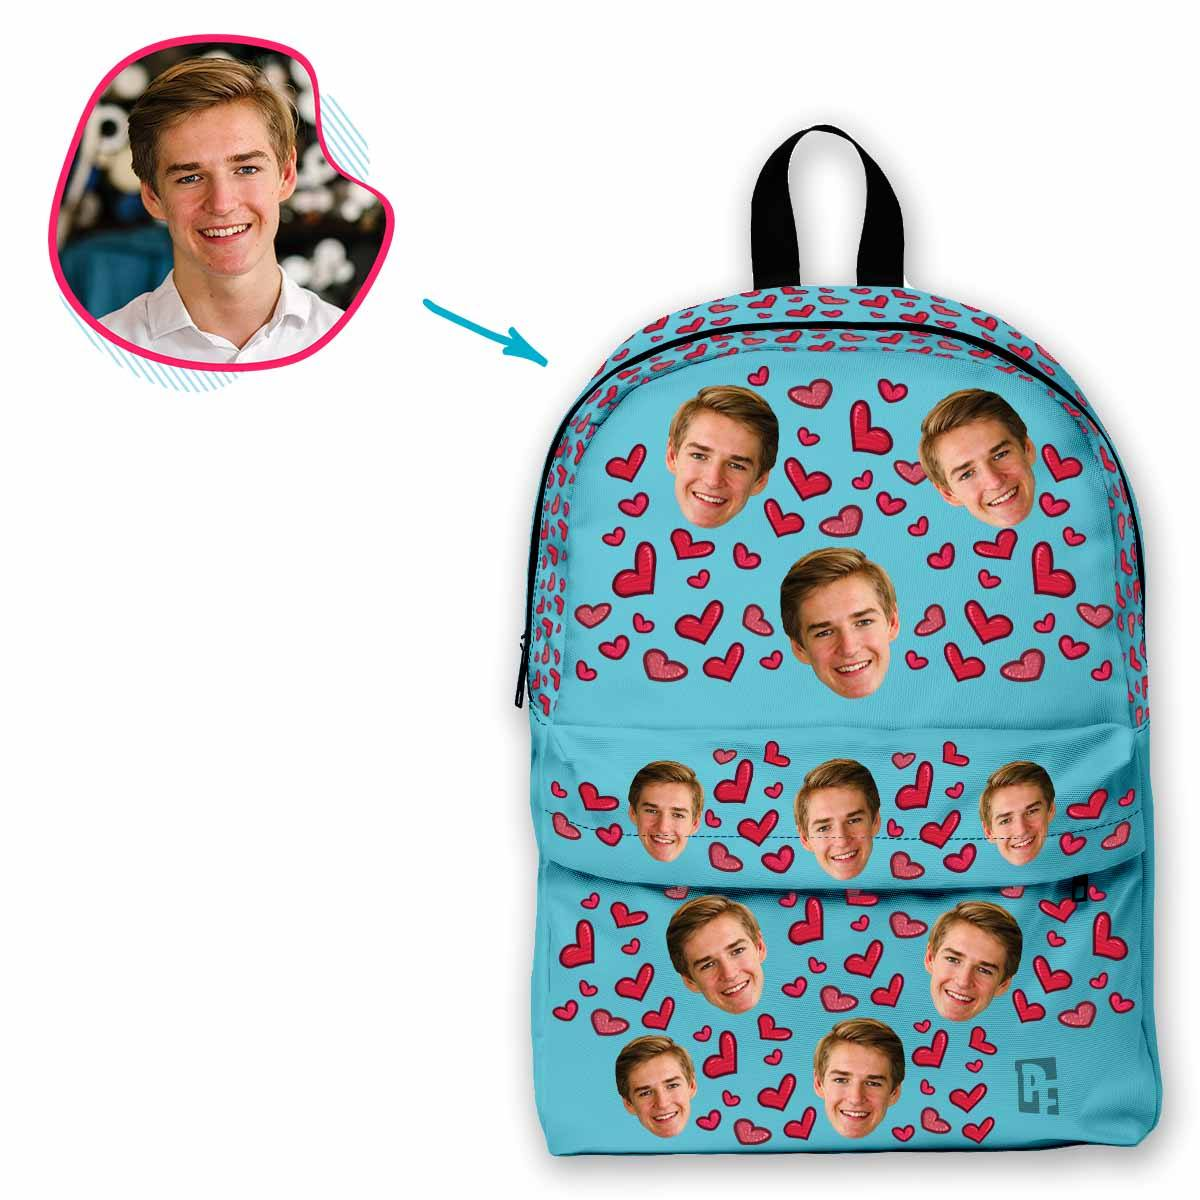 blue Heart classic backpack personalized with photo of face printed on it